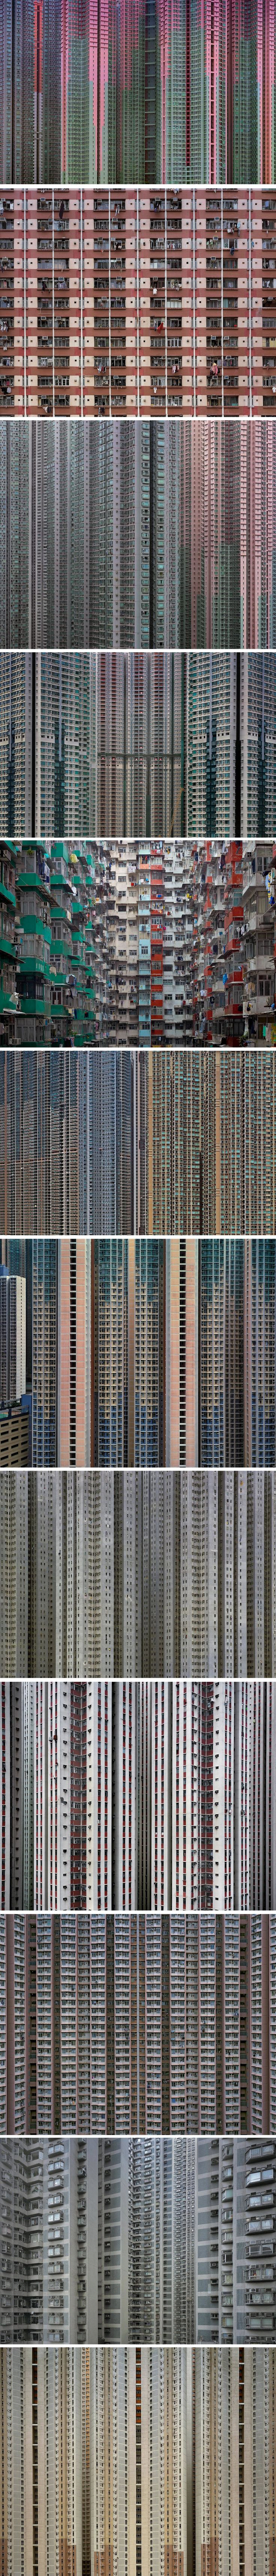 Michael Wolf's Architecture of Density project   - Hong Kong's  high-rise architecture